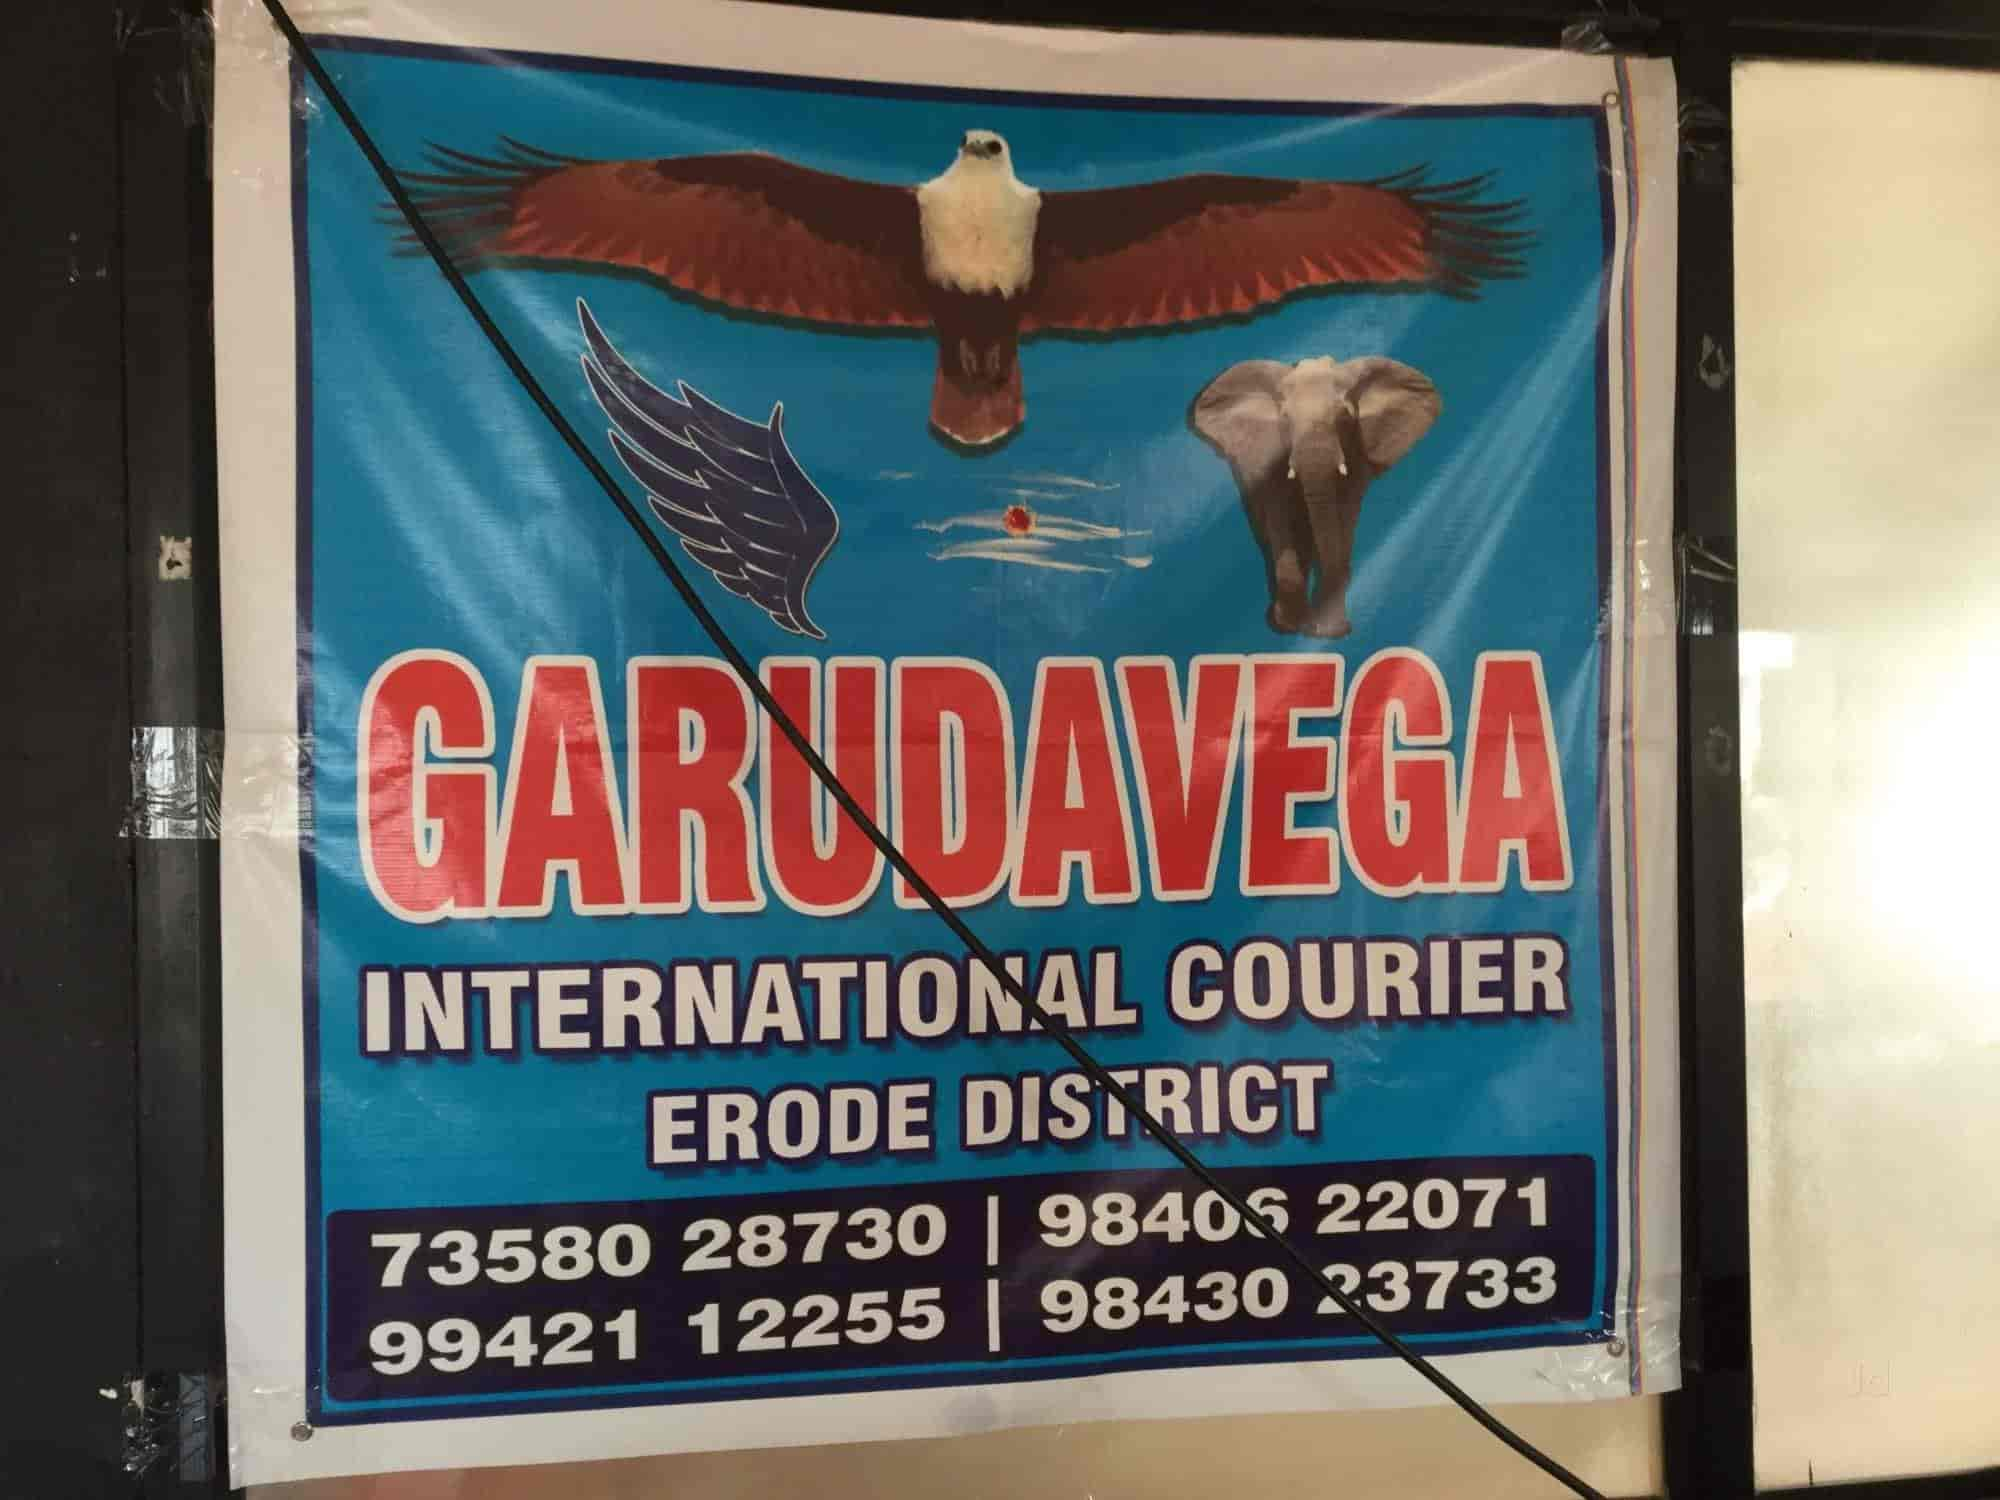 Garudavega International Courier, Erode HO - Courier